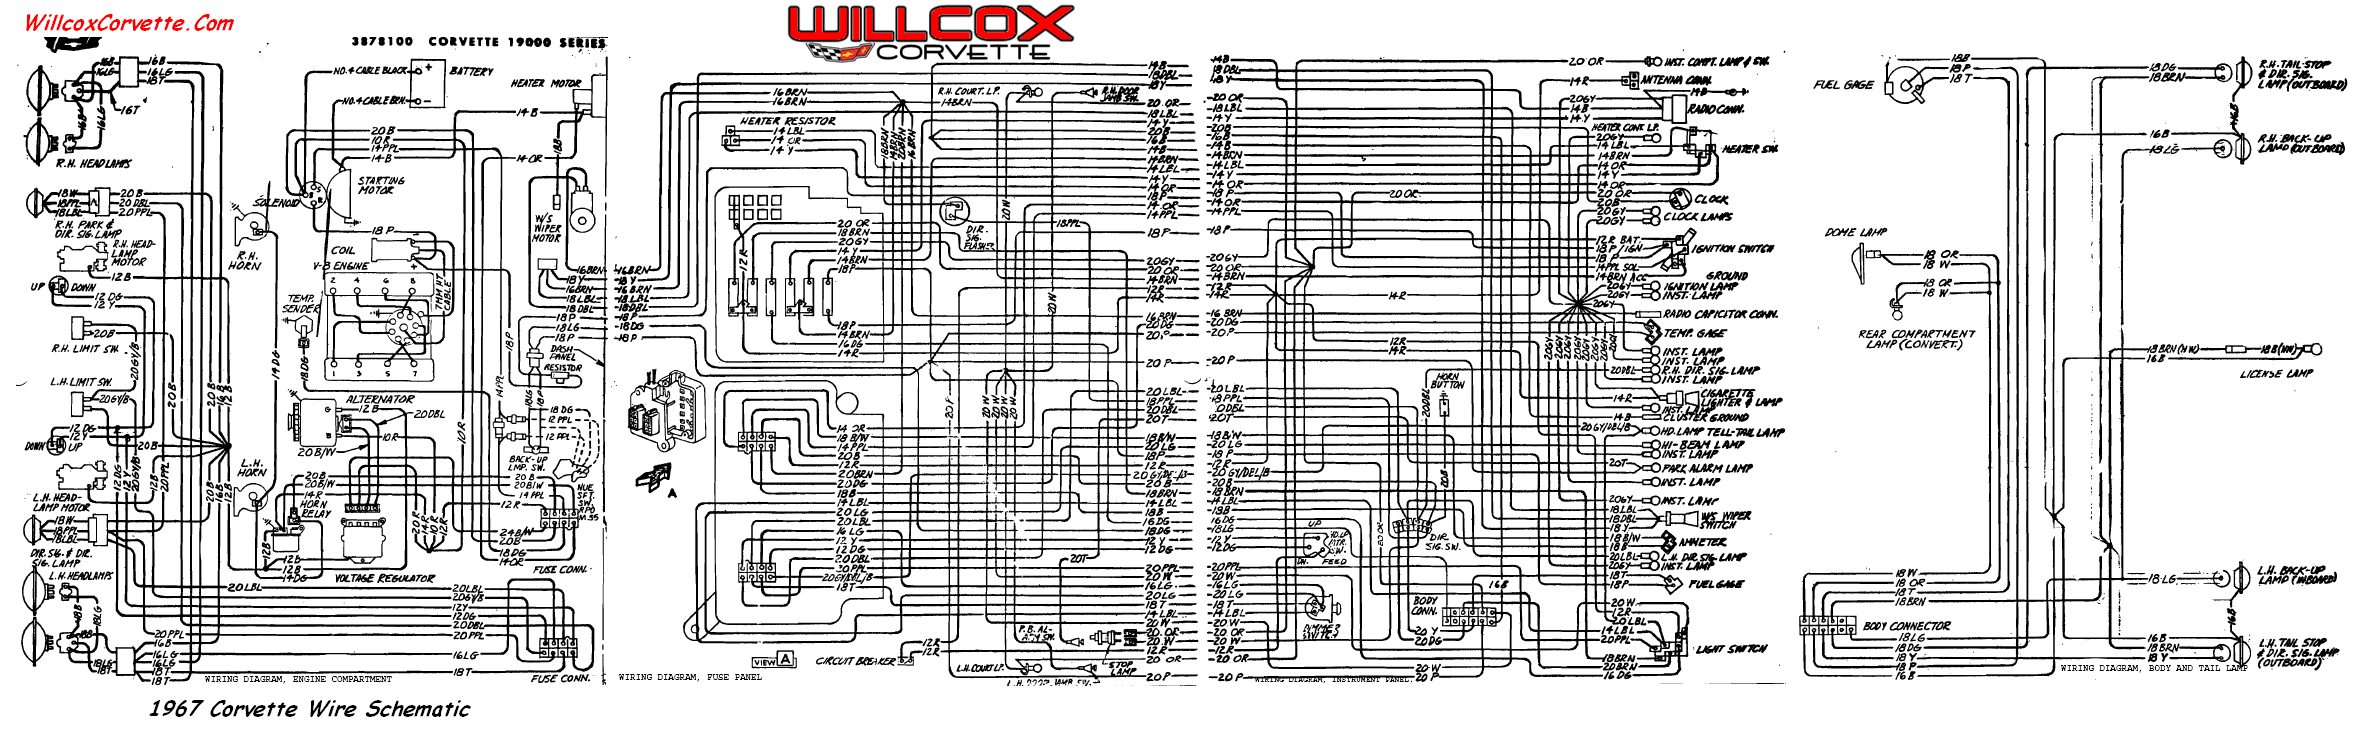 67 wire schematic for tracing wires 1967 corvette wiring diagram (tracer schematic) willcox corvette 1966 corvette wiring diagram pdf at mifinder.co